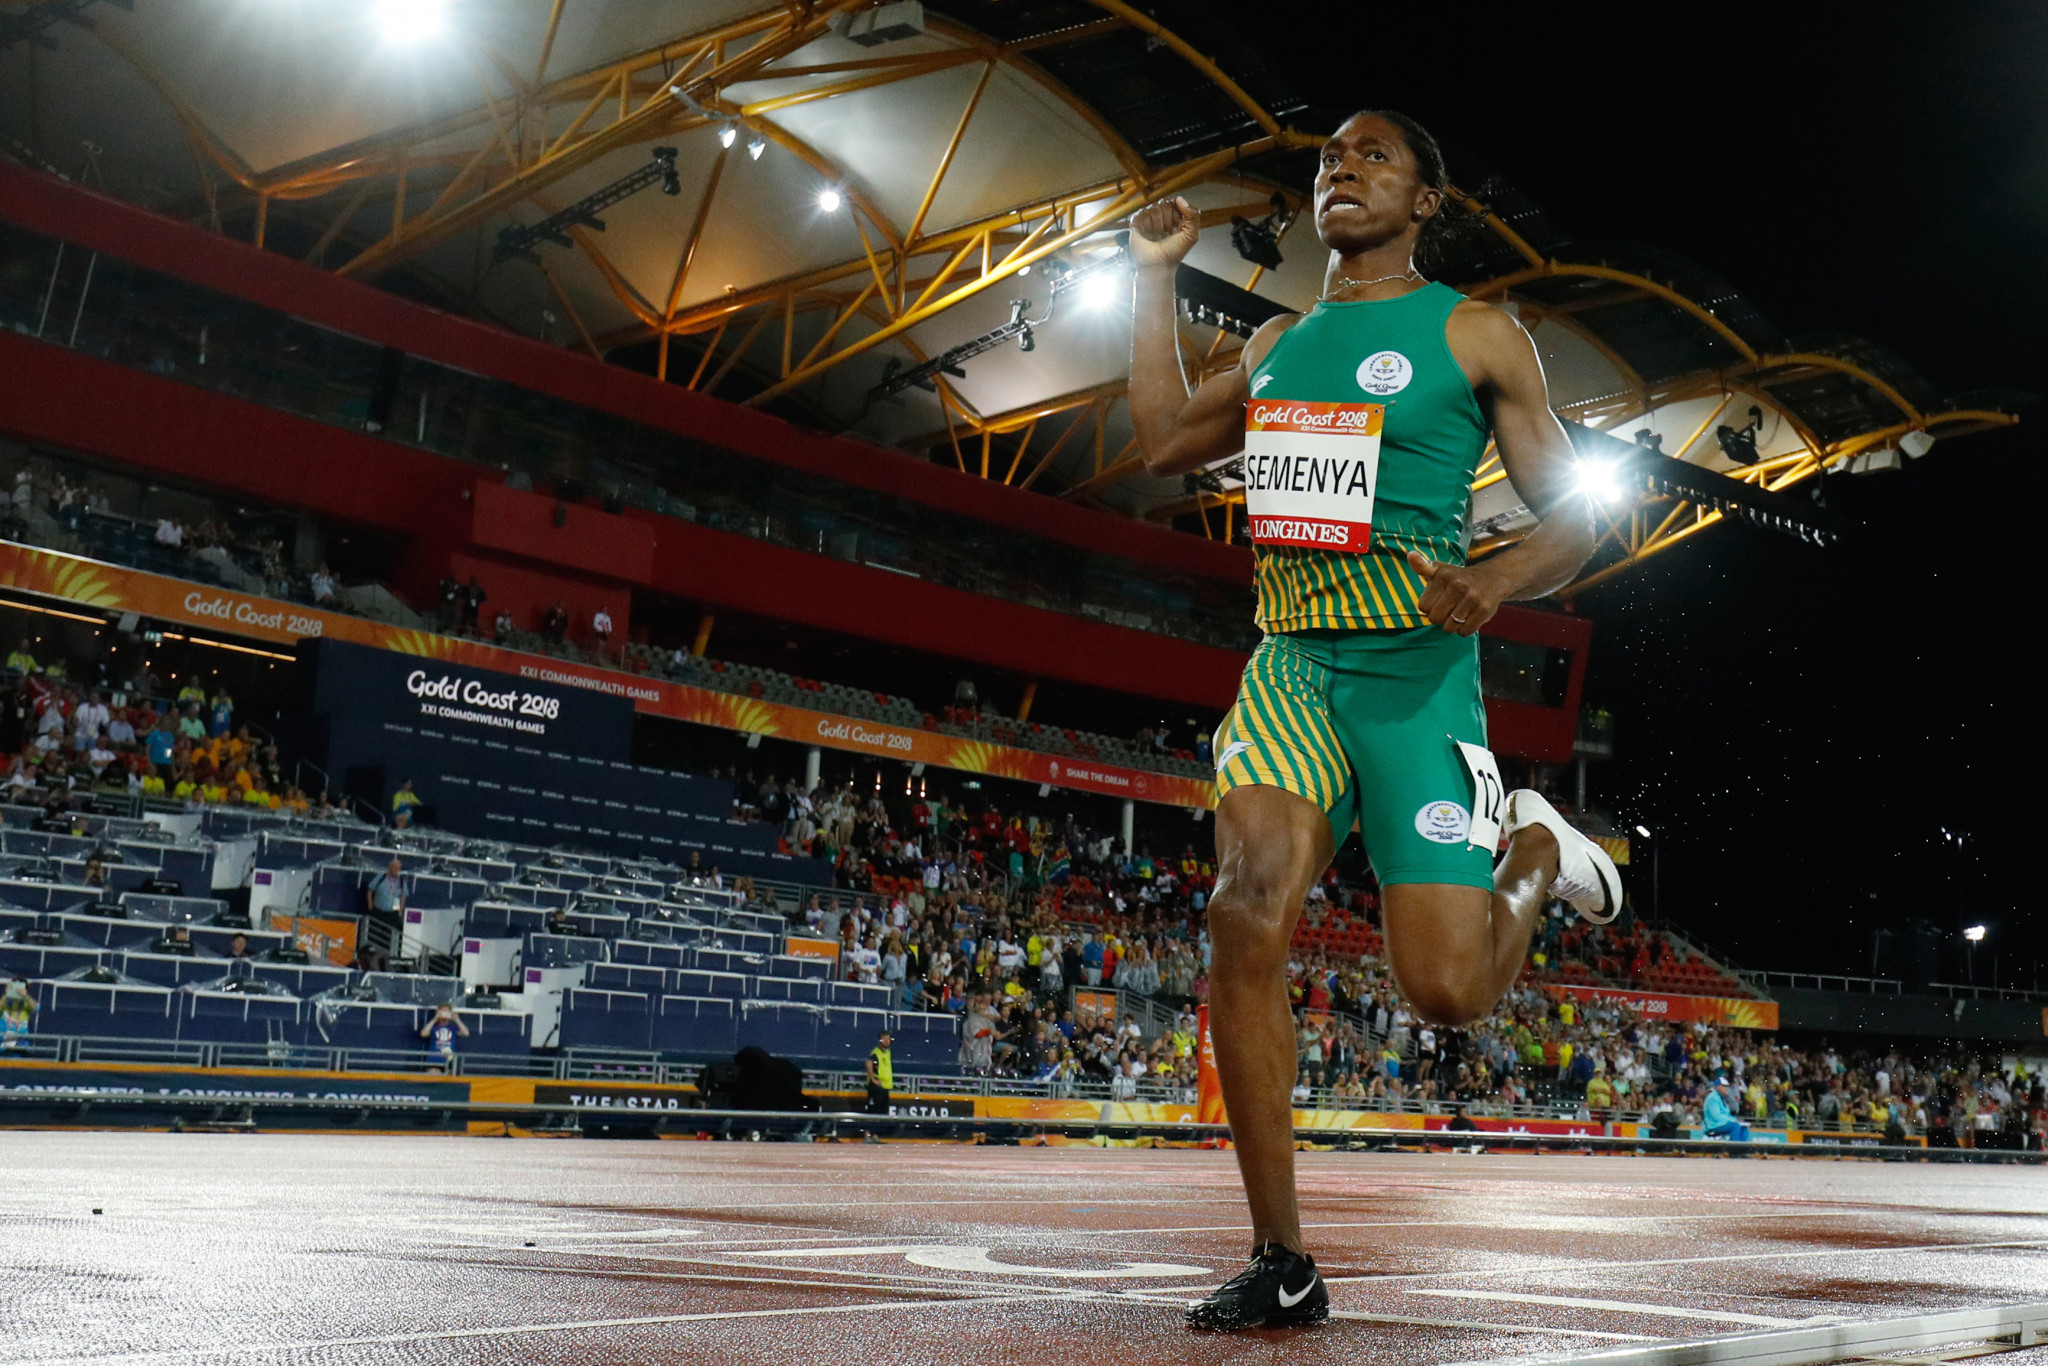 Semenya shatters Budd's 34-year-old South African record to win Commonwealth Games 1500m title